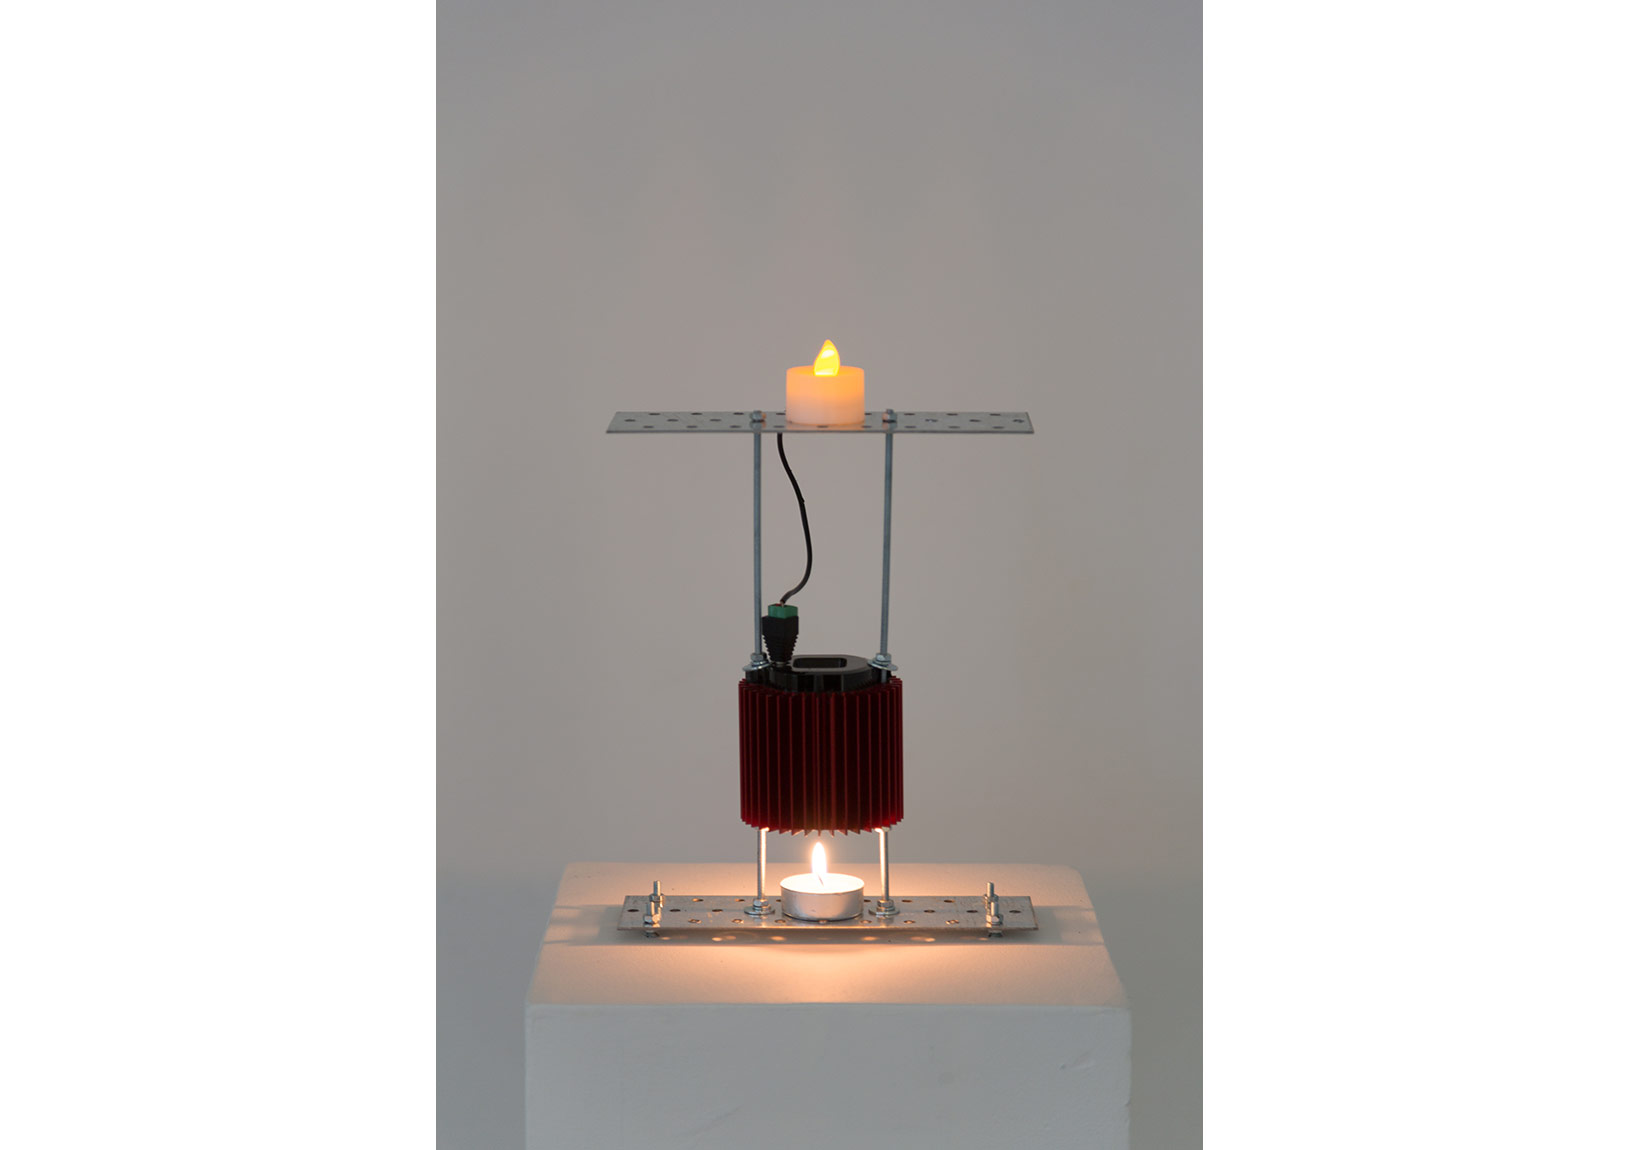 Prometheus Electronic(candle version), 2013, Candle thermoelectric generator electric candle, 30x20x6cm, Ed.3-3 +AP